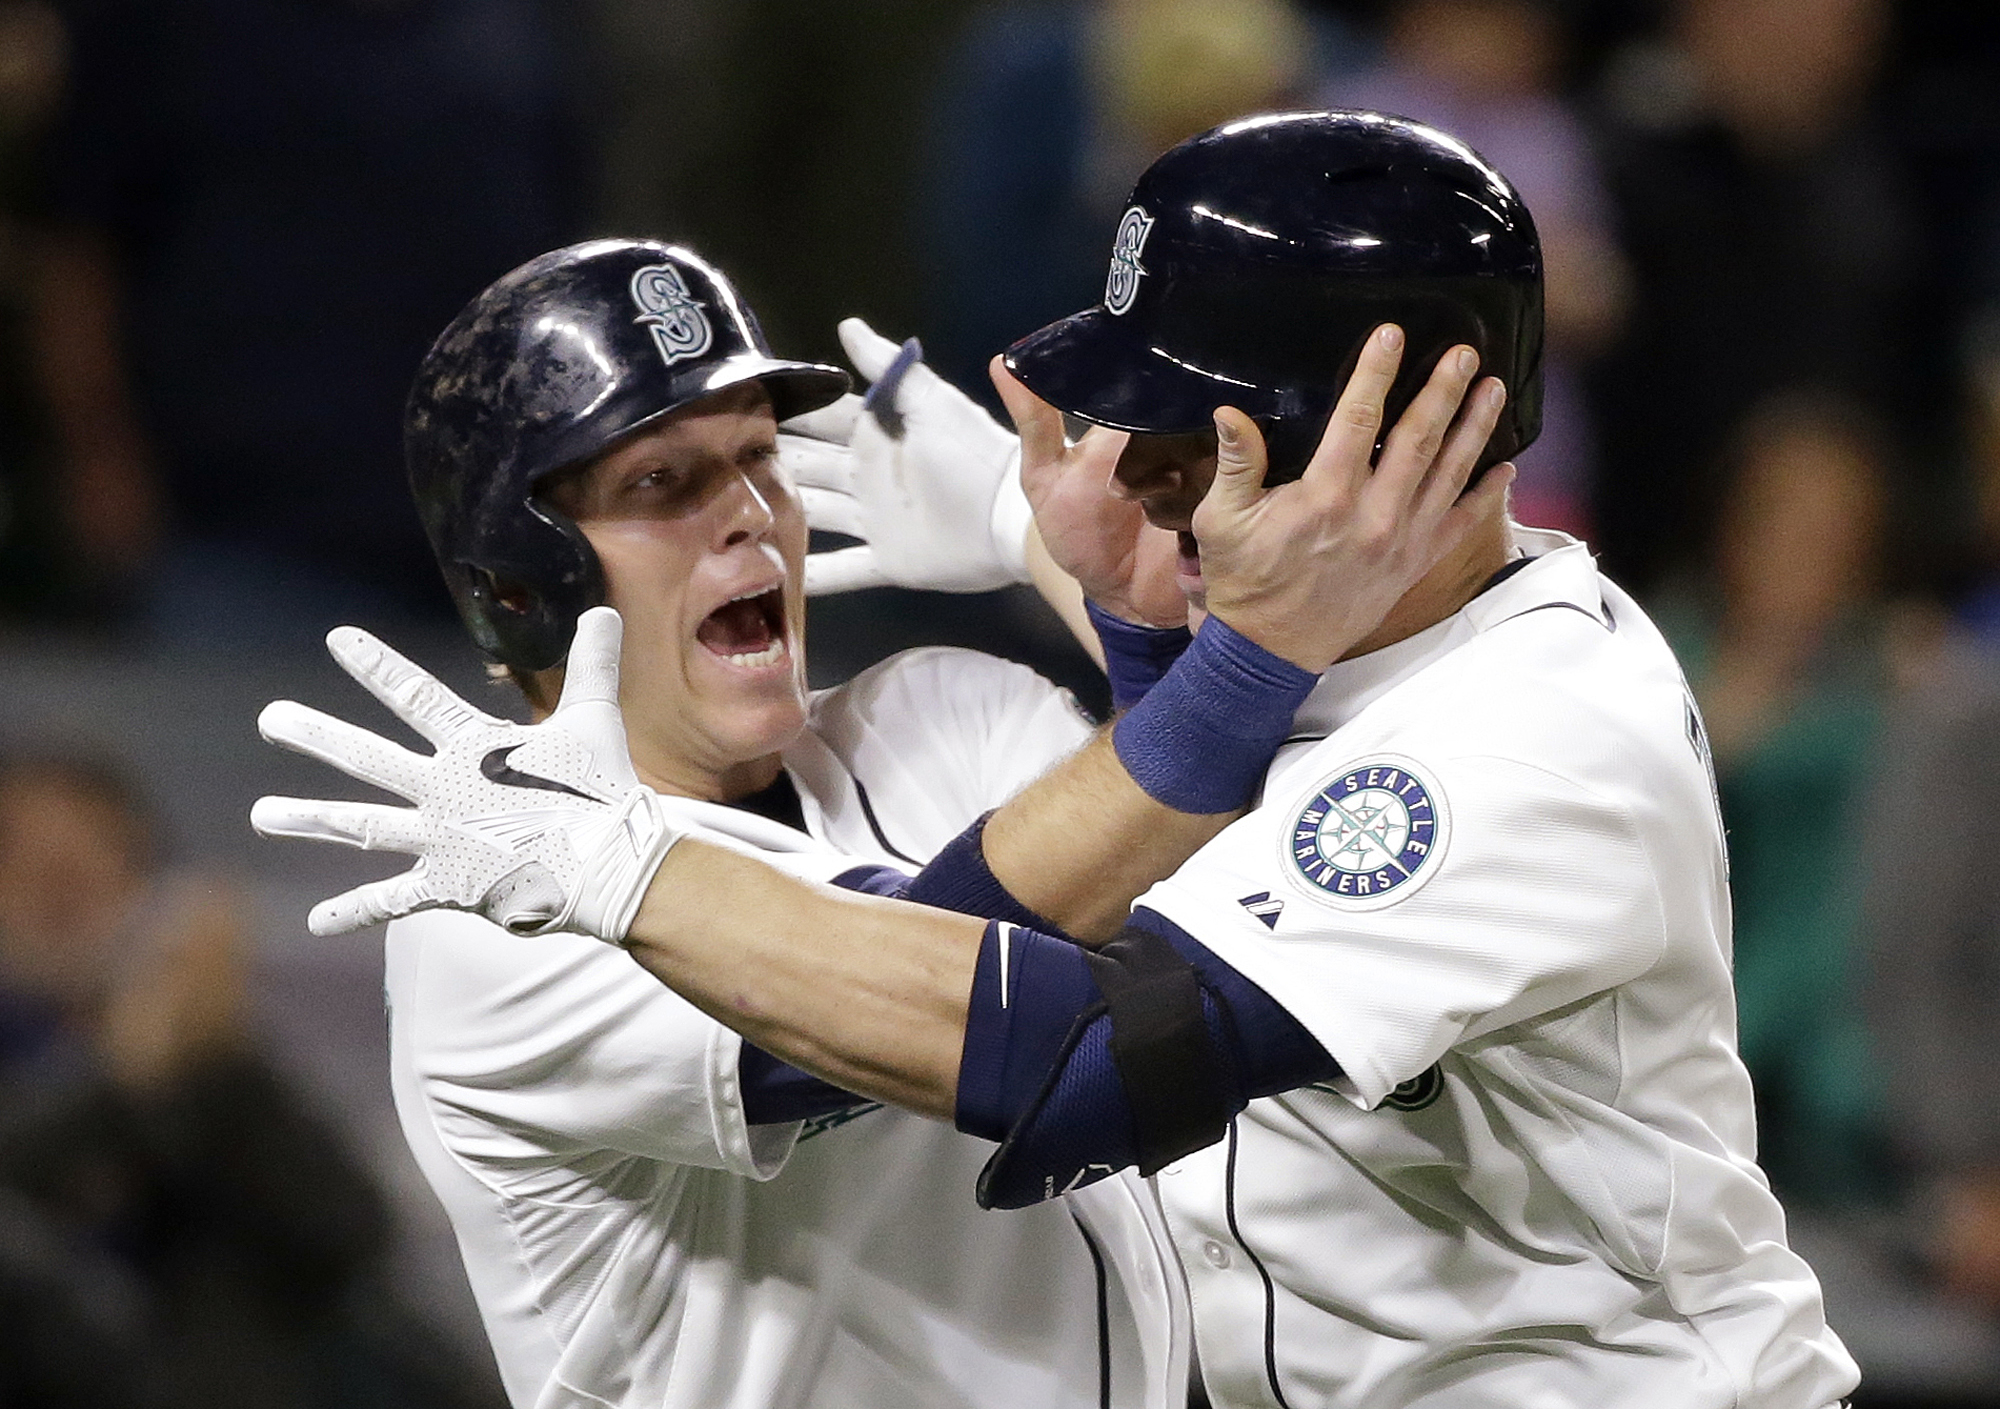 Seattle Mariners' Logan Morrison, left, greets Mike Zunino at home after scoring on Zunino's two-run home run against the San Diego Padres during the seventh inning of a baseball game Tuesday, May 12, 2015, in Seattle. (AP Photo/Elaine Thompson)